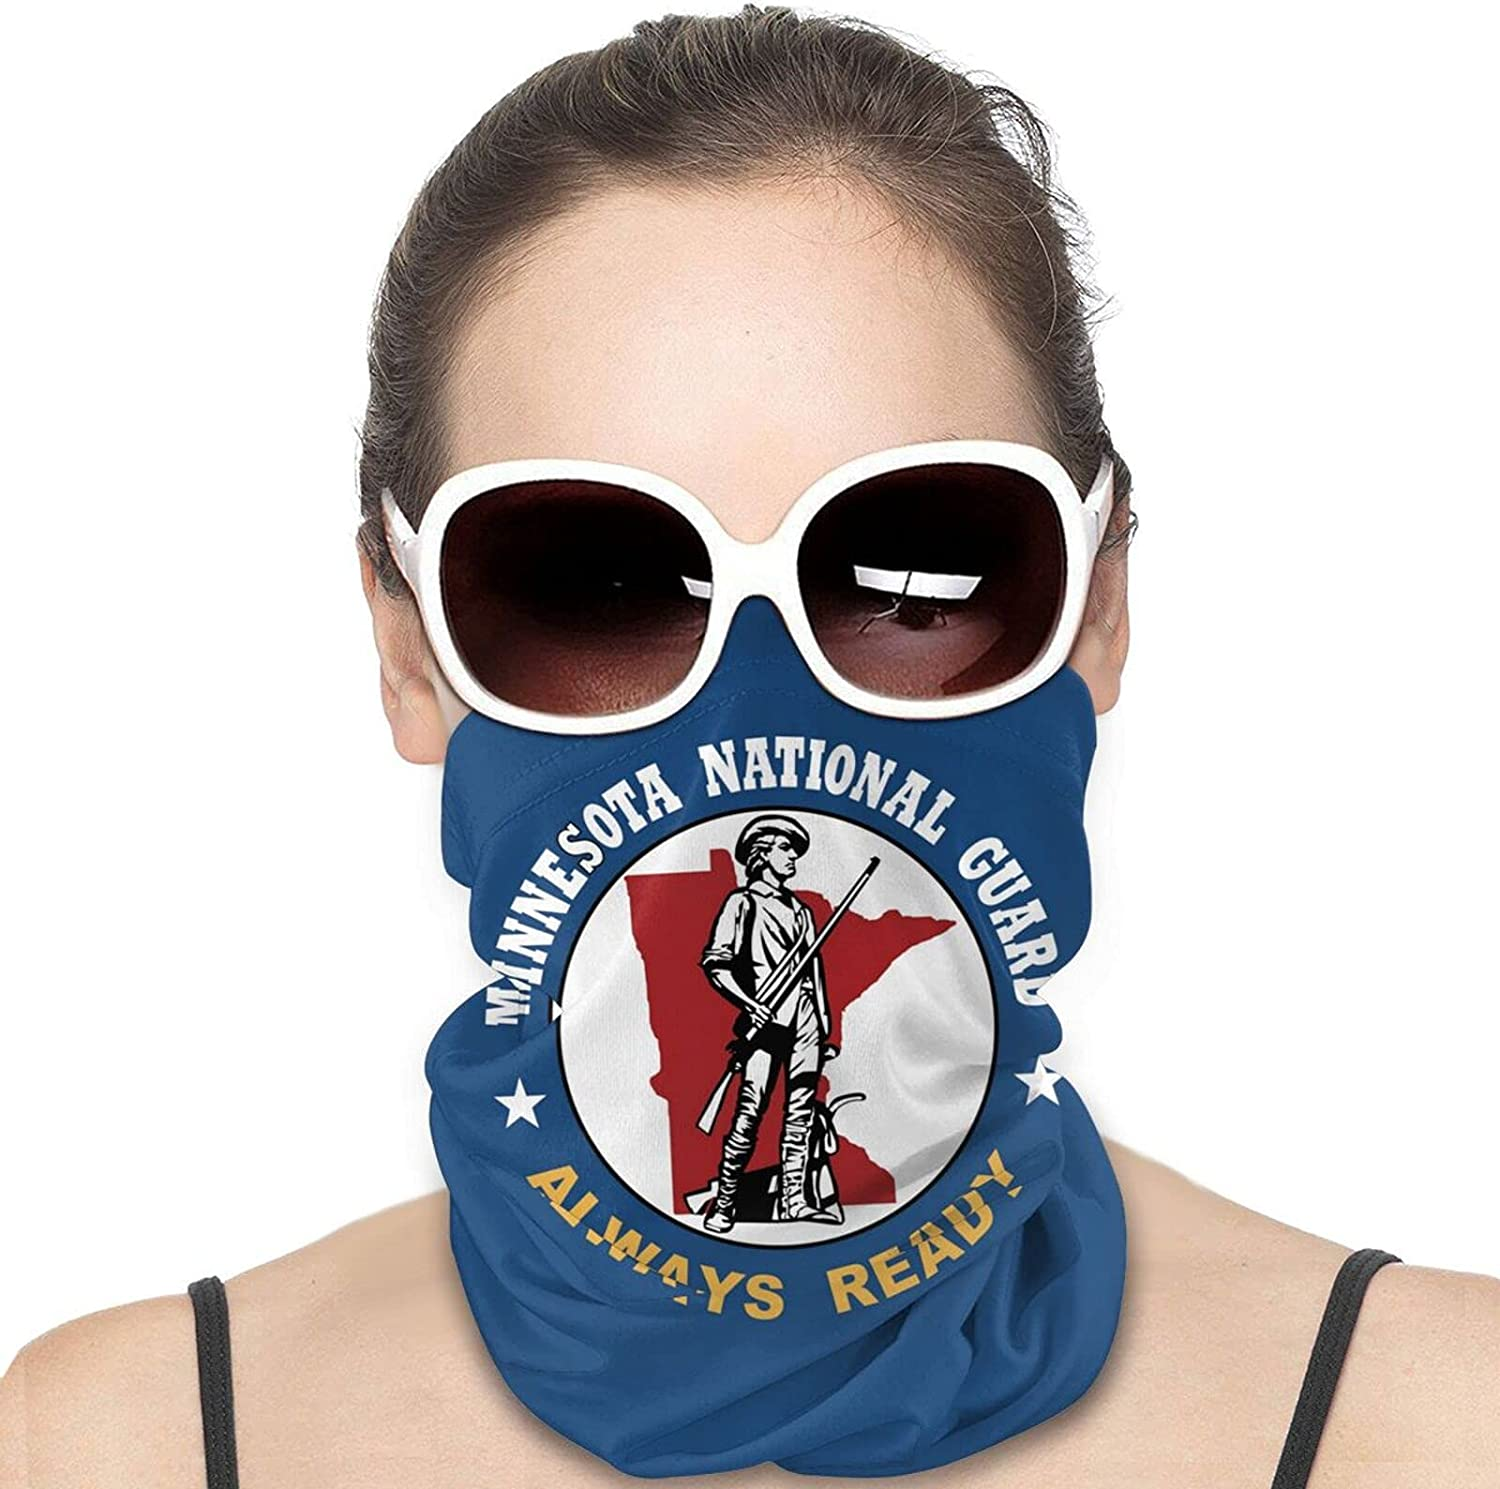 Army National Guard Trained Round Neck Gaiter Bandnas Face Cover Uv Protection Prevent bask in Ice Scarf Headbands Perfect for Motorcycle Cycling Running Festival Raves Outdoors